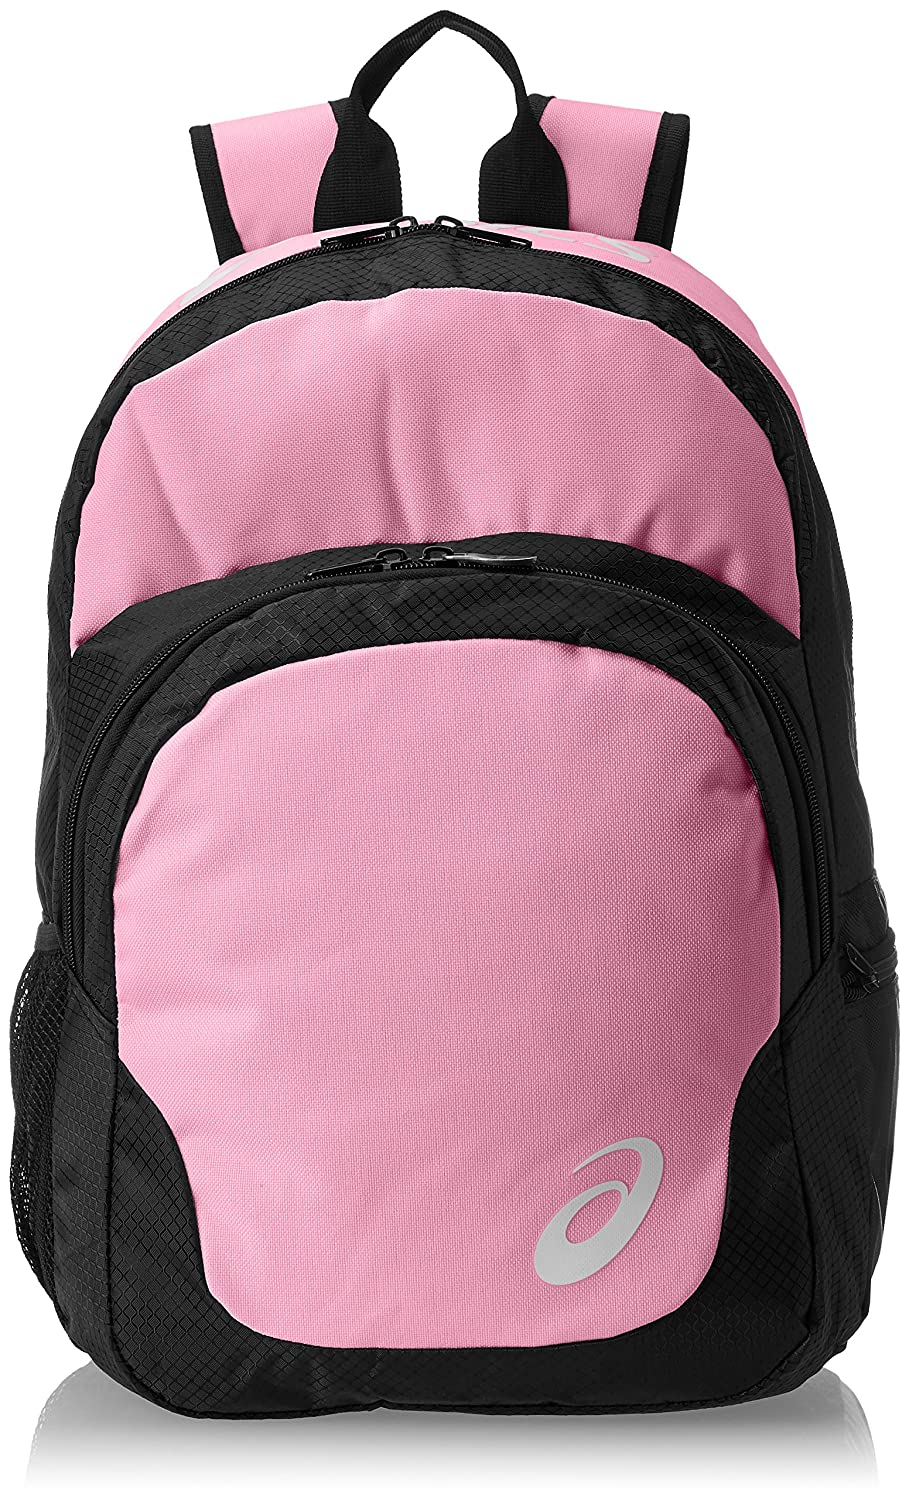 ASICS Team Backpack, Pink Glow/Black, One Size: Amazon.es: Deportes y aire libre